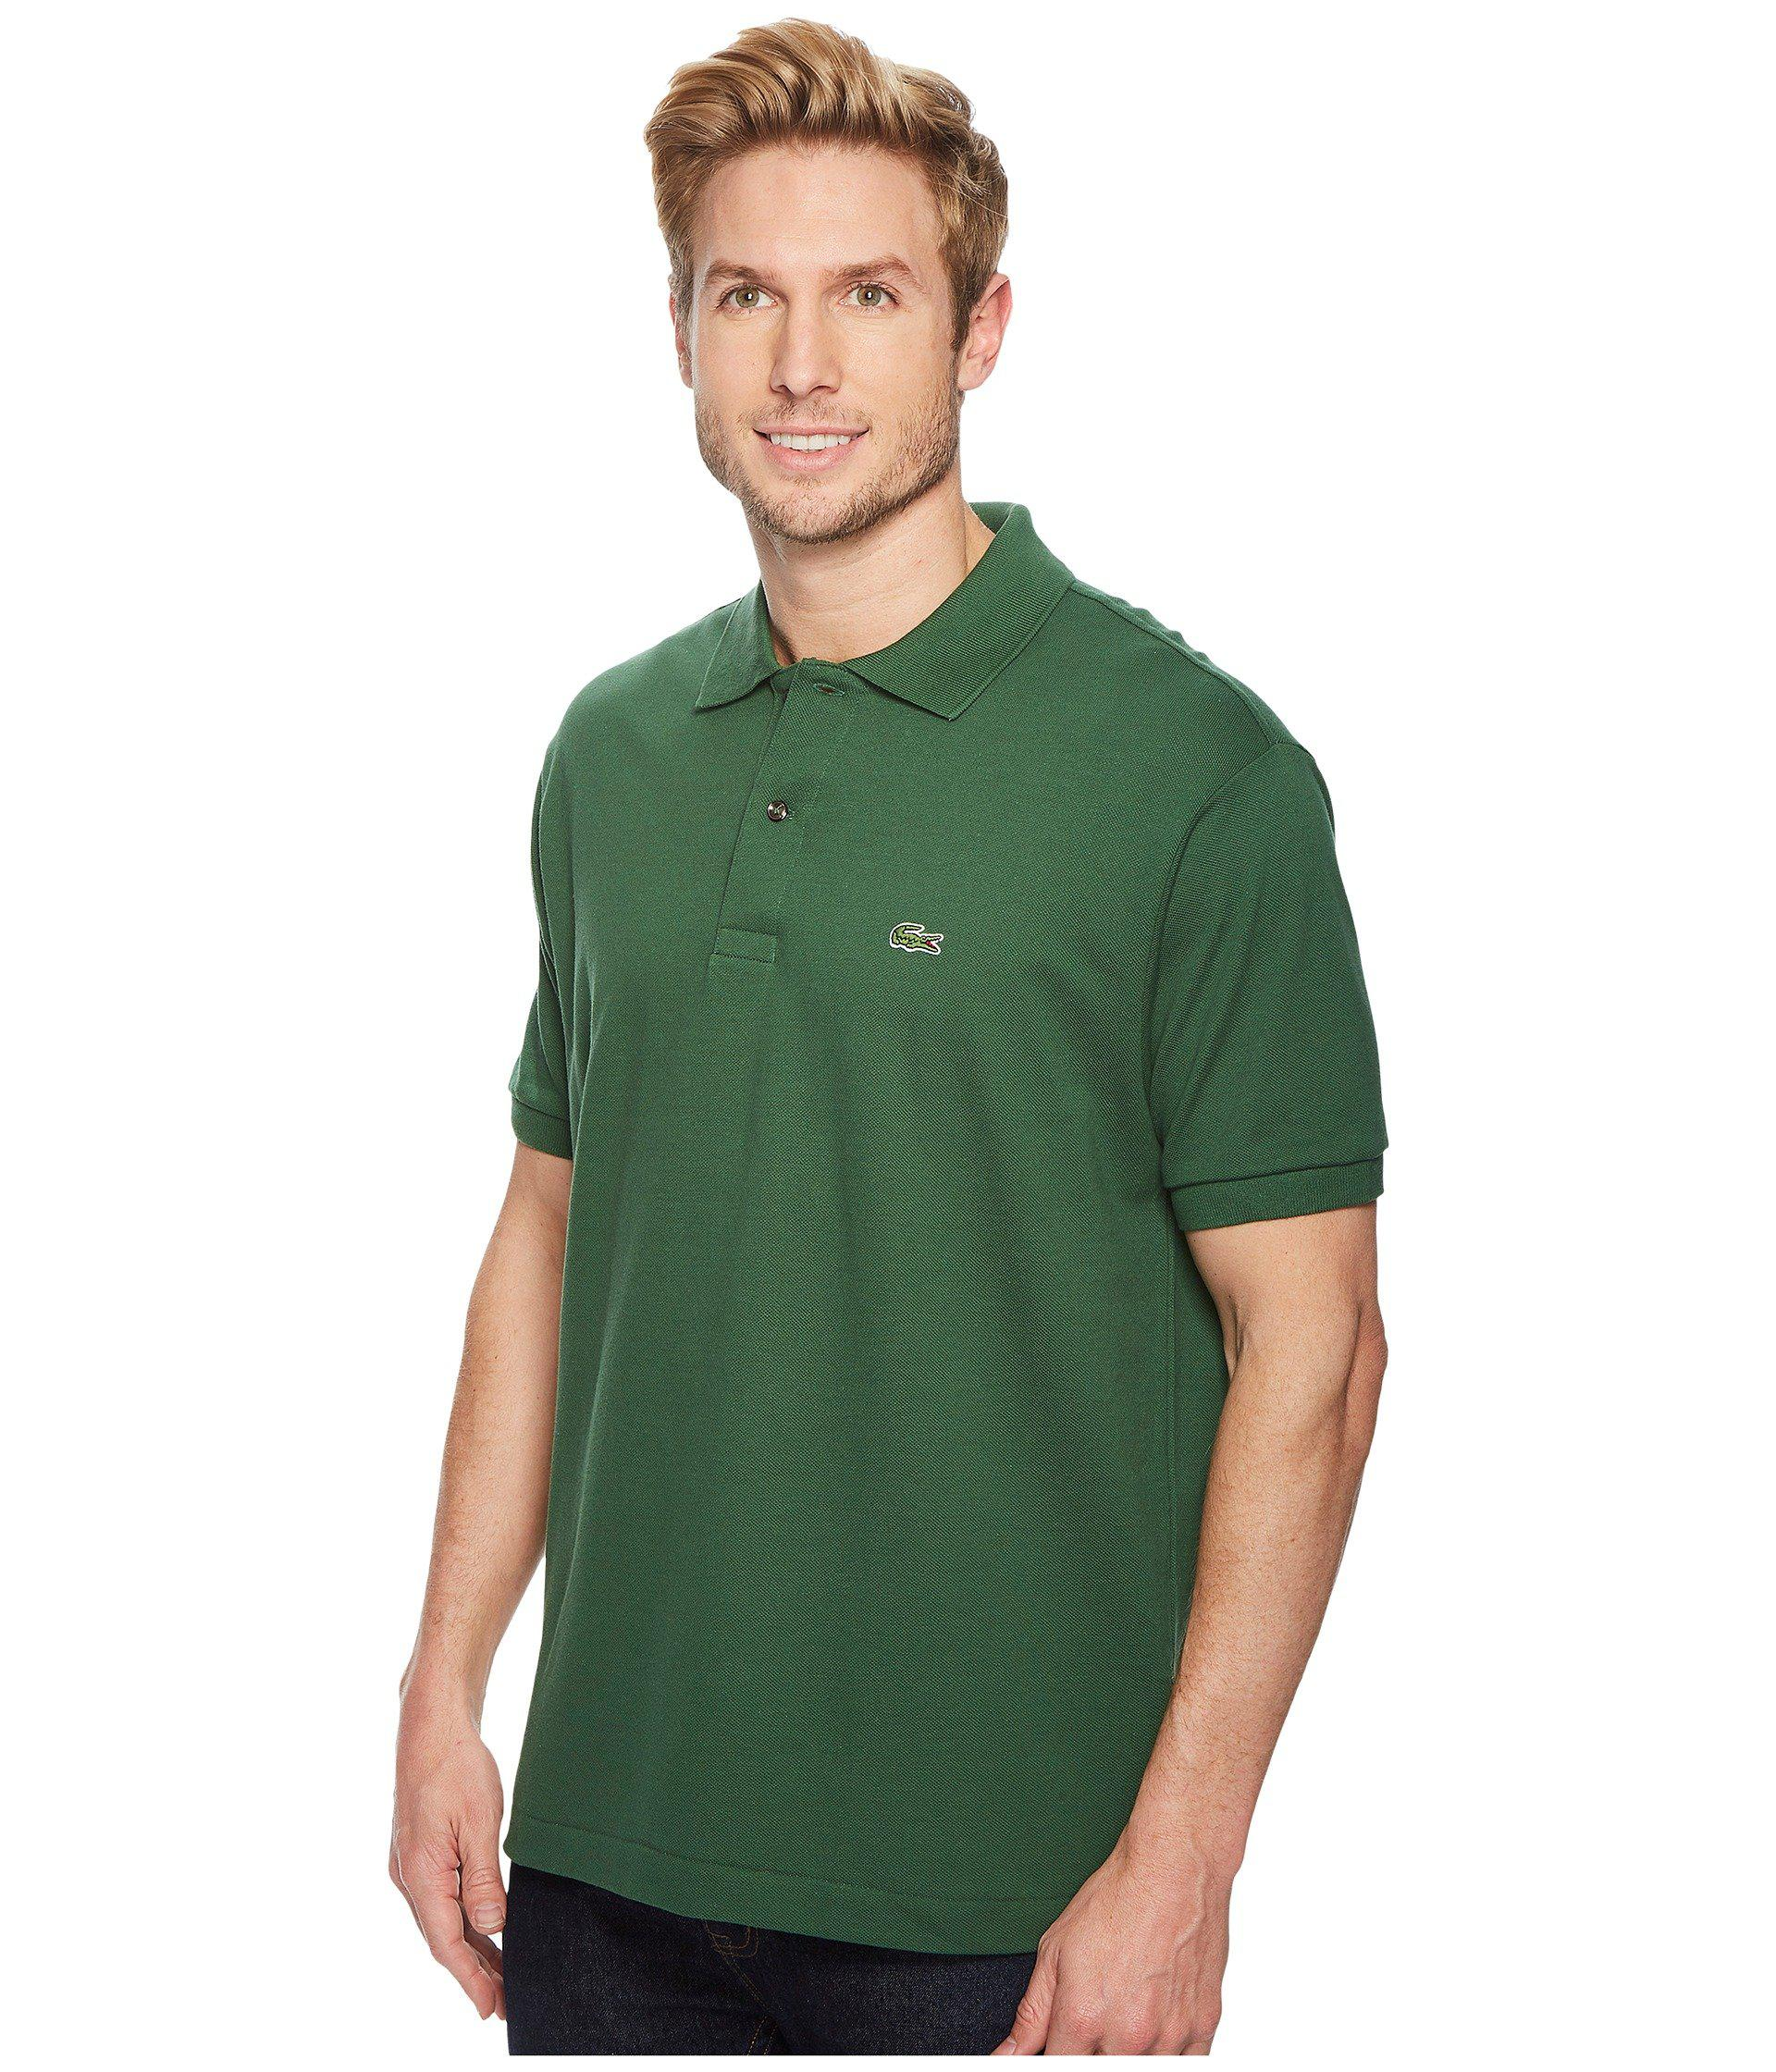 052c1a01c Lyst - Lacoste Short Sleeve Classic Pique Polo Shirt (green) Men s Short  Sleeve Pullover in Green for Men - Save 50%